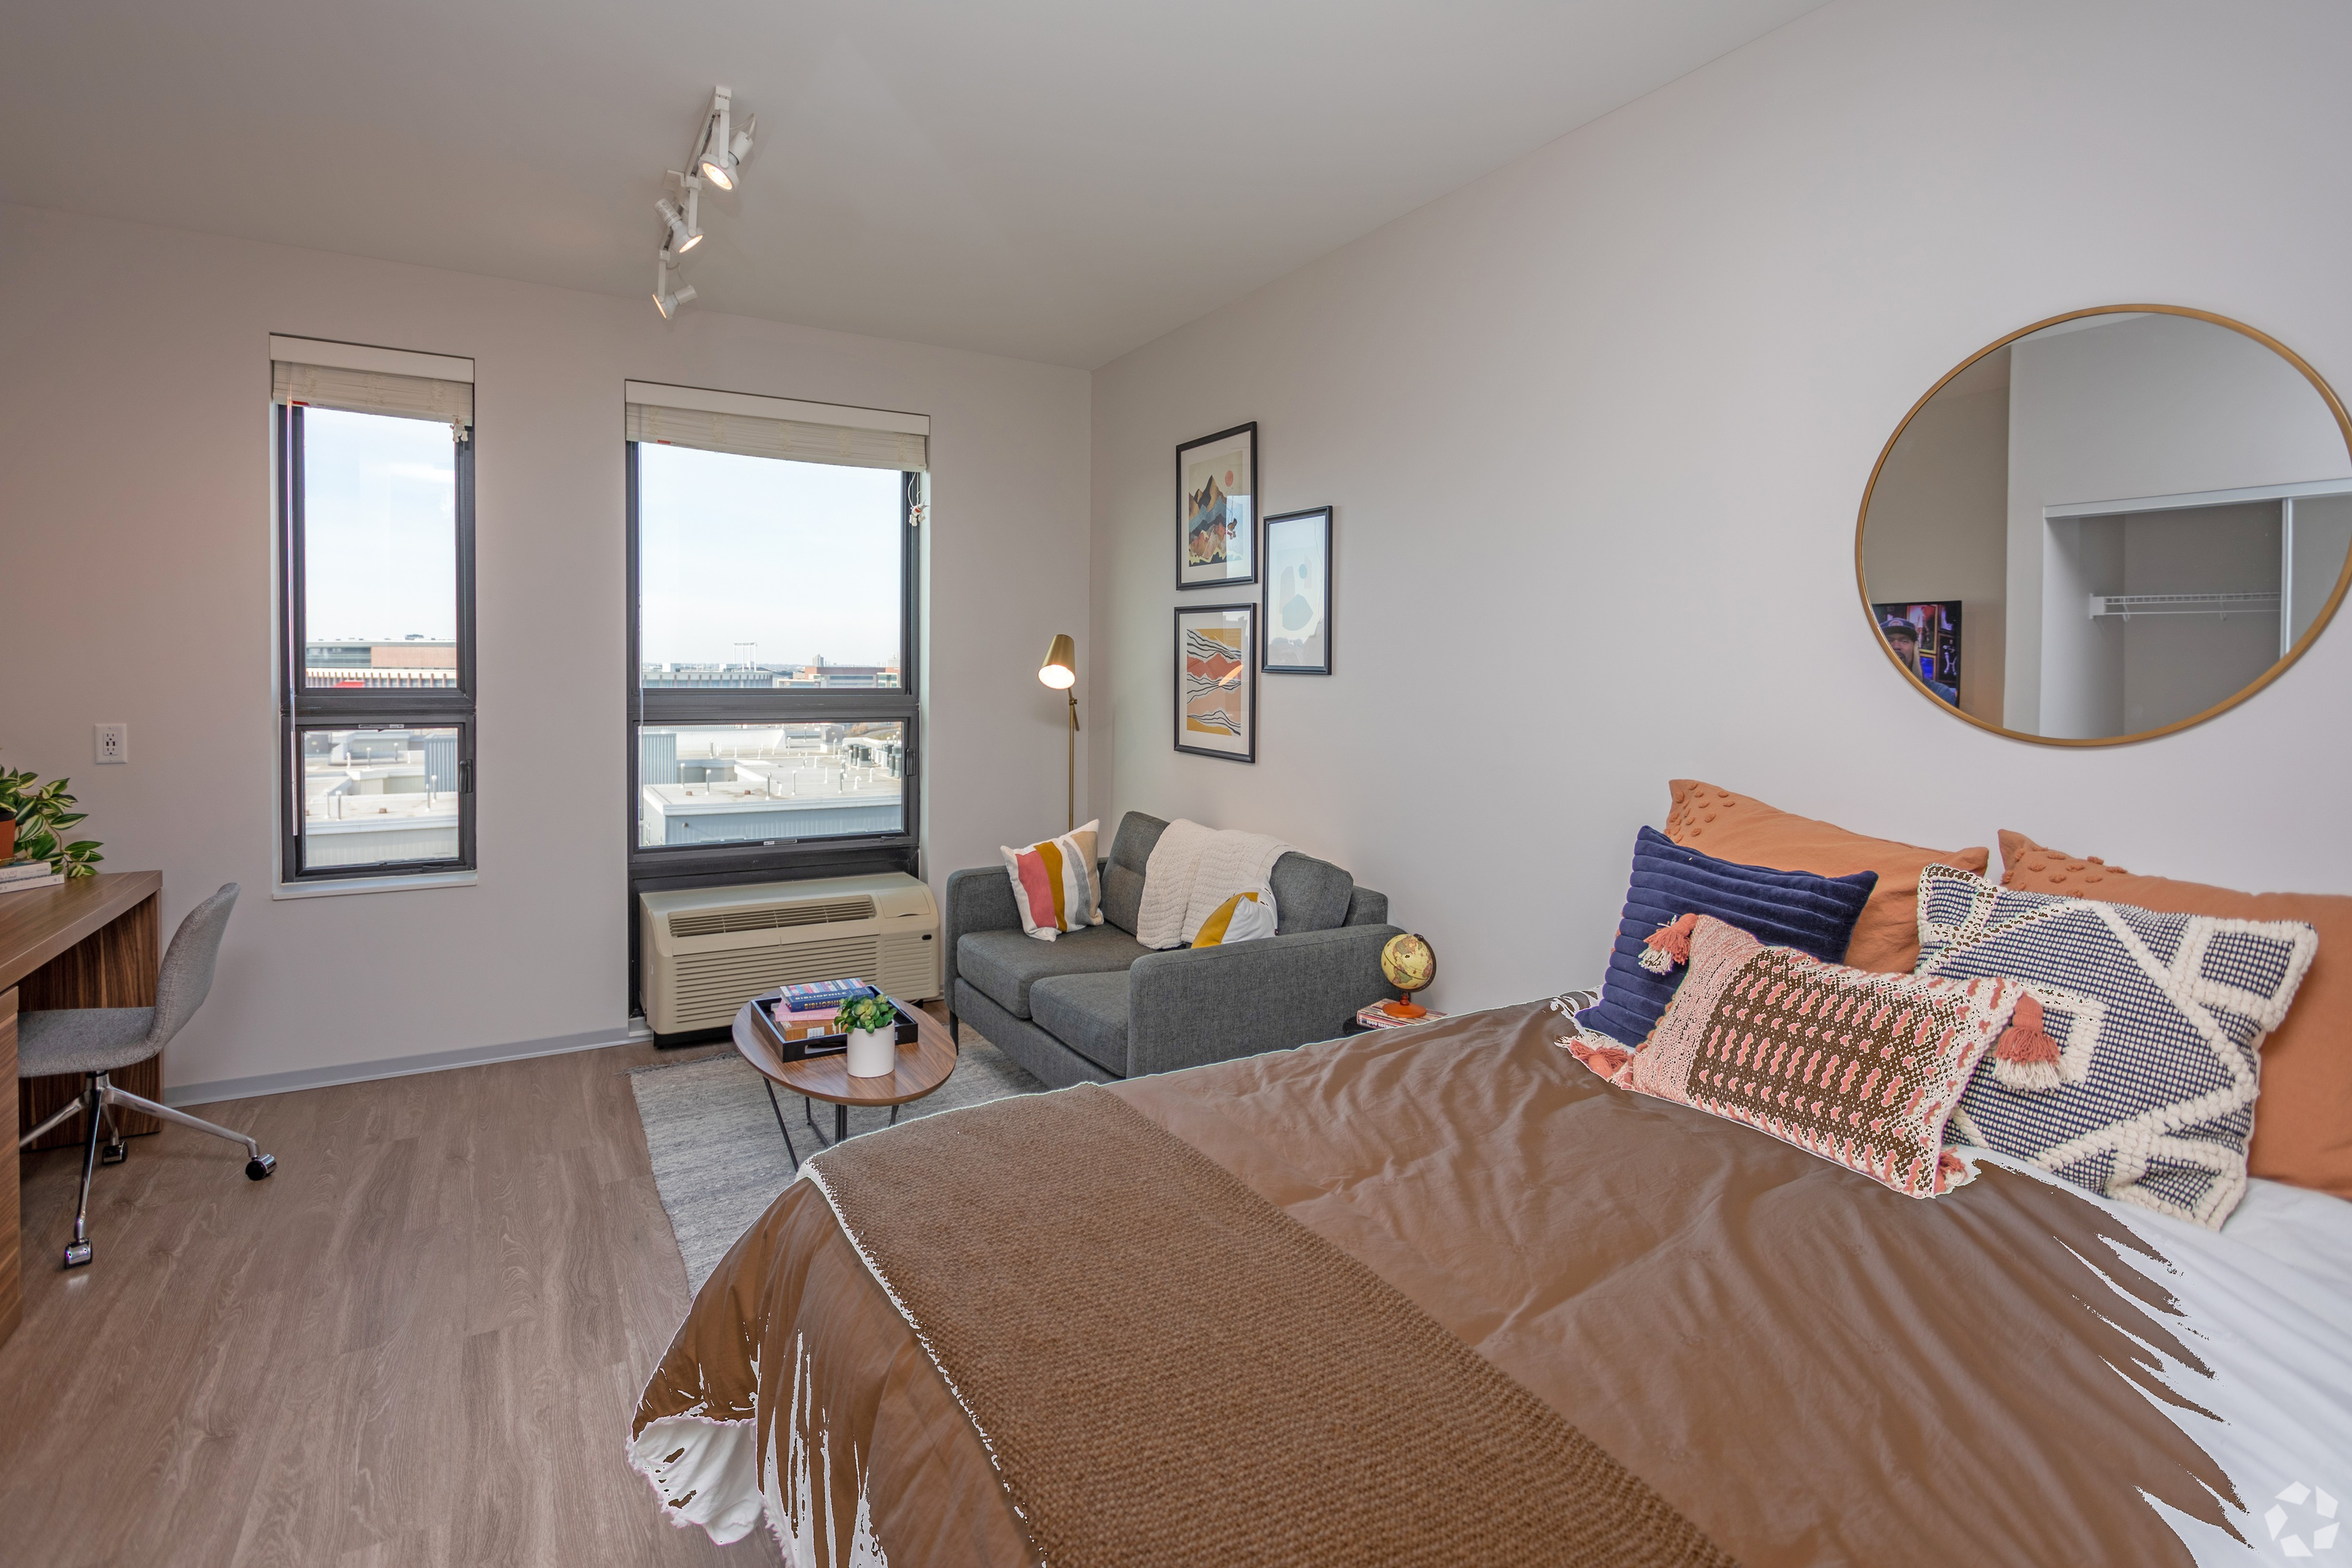 Student Housing - HERE Minneapolis for rent